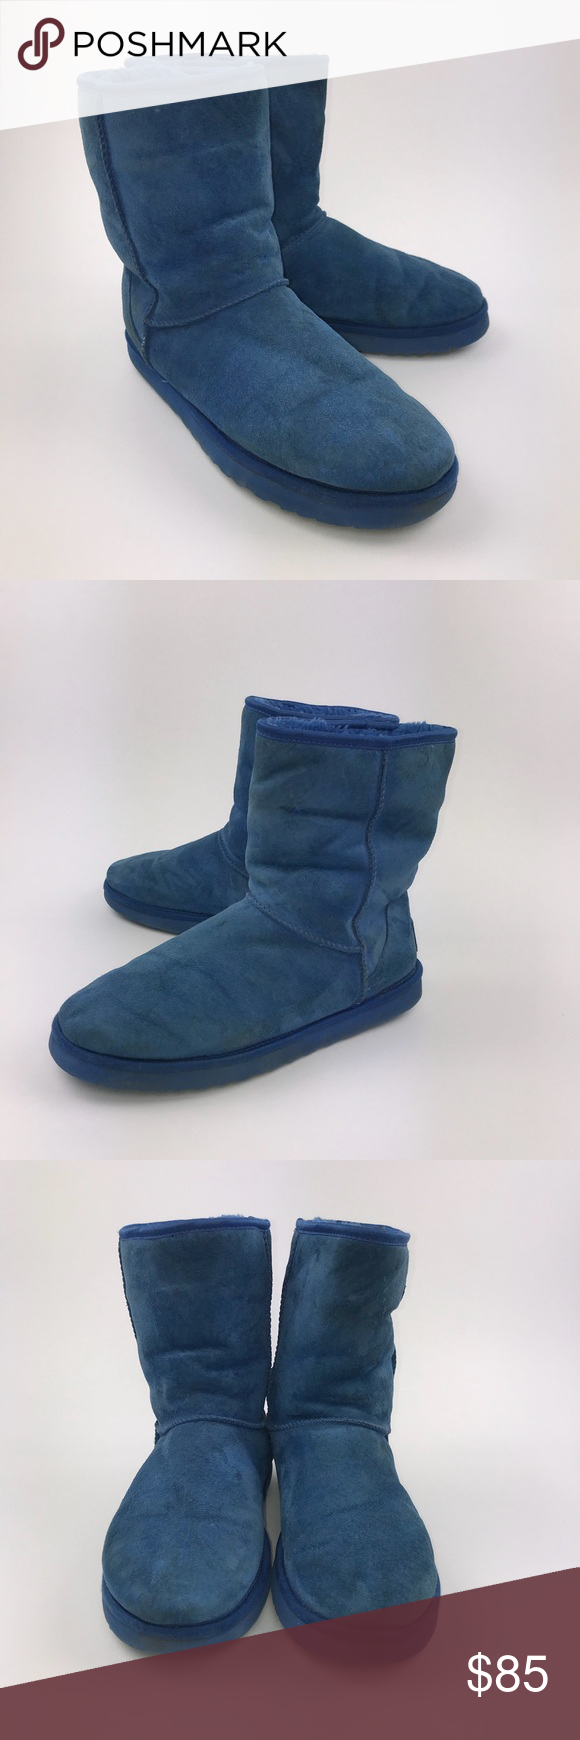 671bba96a410 UGG Women s Blue Crystal Bow Classic Short Boots. Size 11 ...